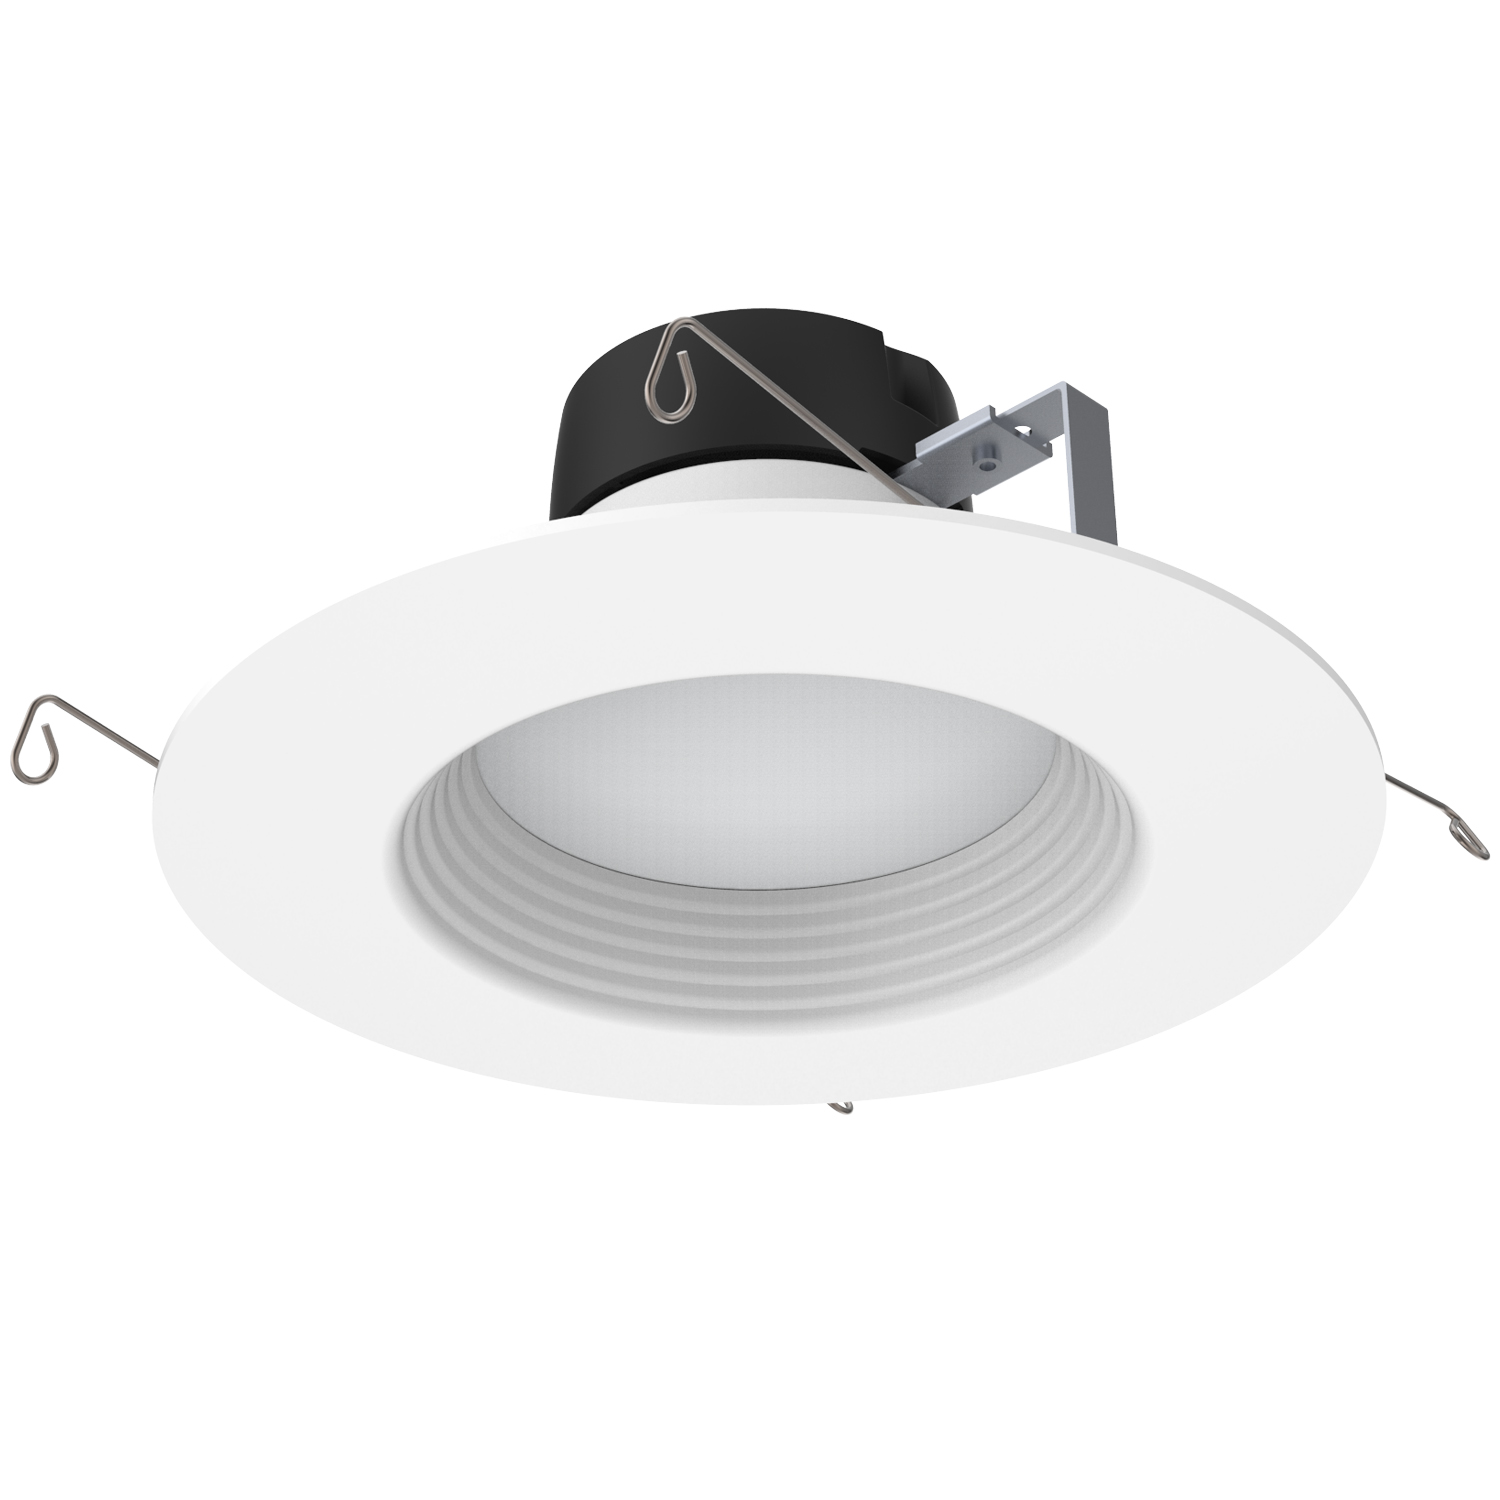 "DL6FR12/940/RT2/LED 99821 5""-6"" LED RETROFIT DOWNLIGHT 12W 4000K DIMMABLE E26 REPLACEABLE-WHITE TRIM-WHITE BAFFLE"